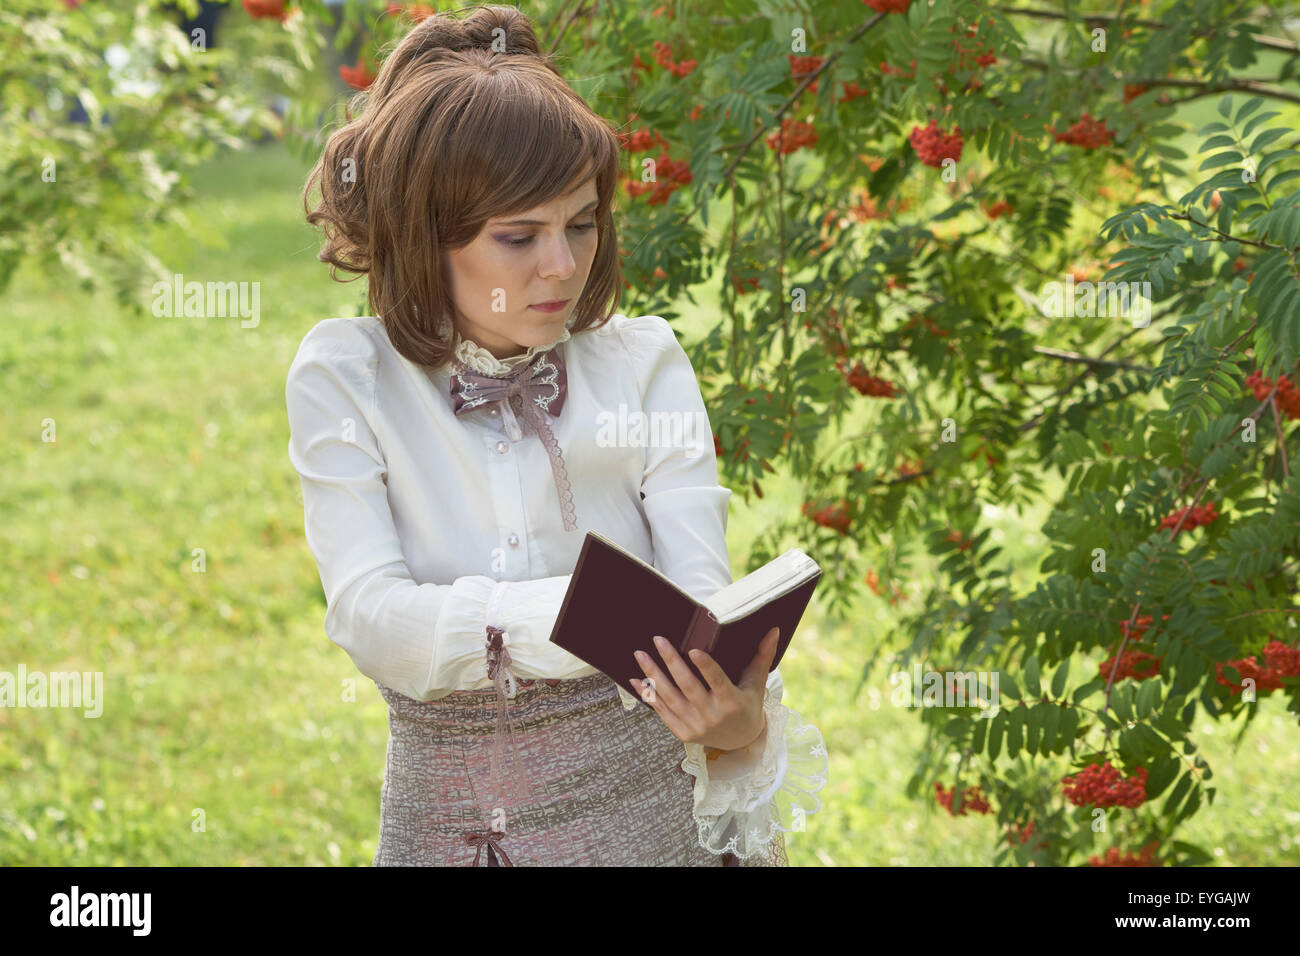 Beautiful girl found something interesting in the book while reading outdoors - Stock Image